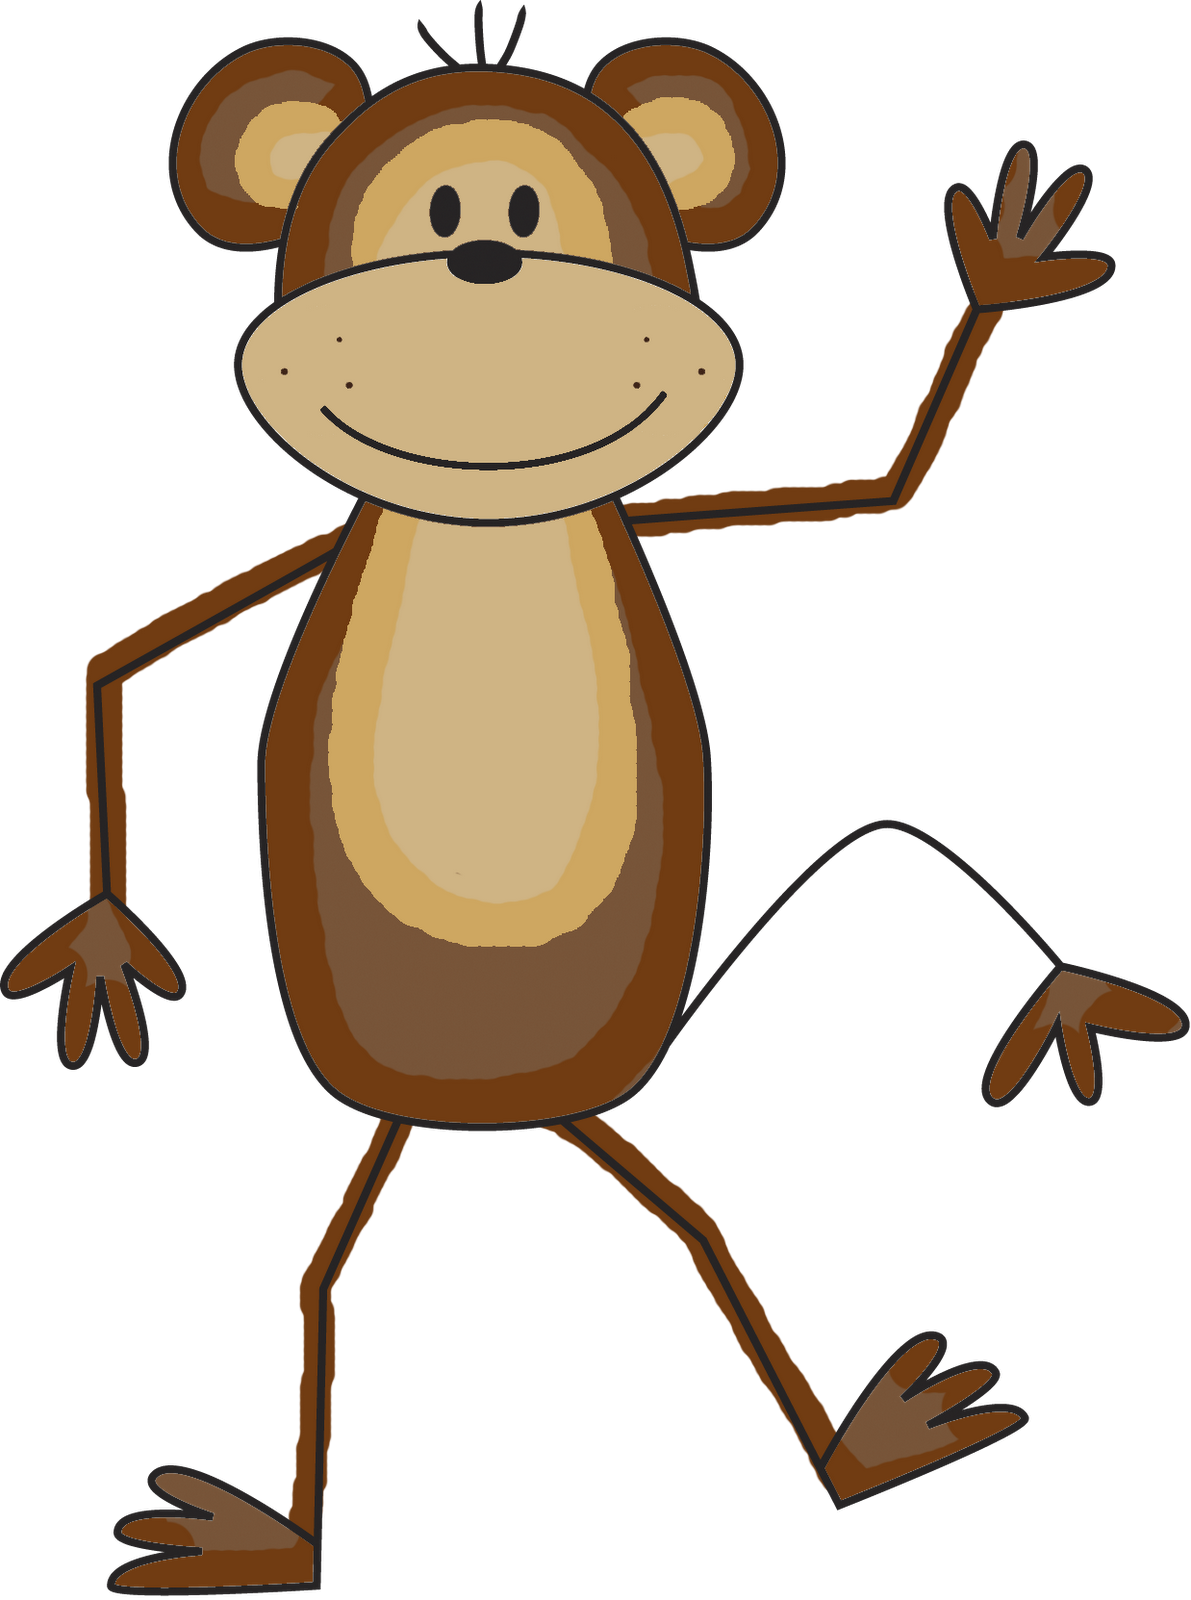 Monkey clipart pencil. Best png free icons